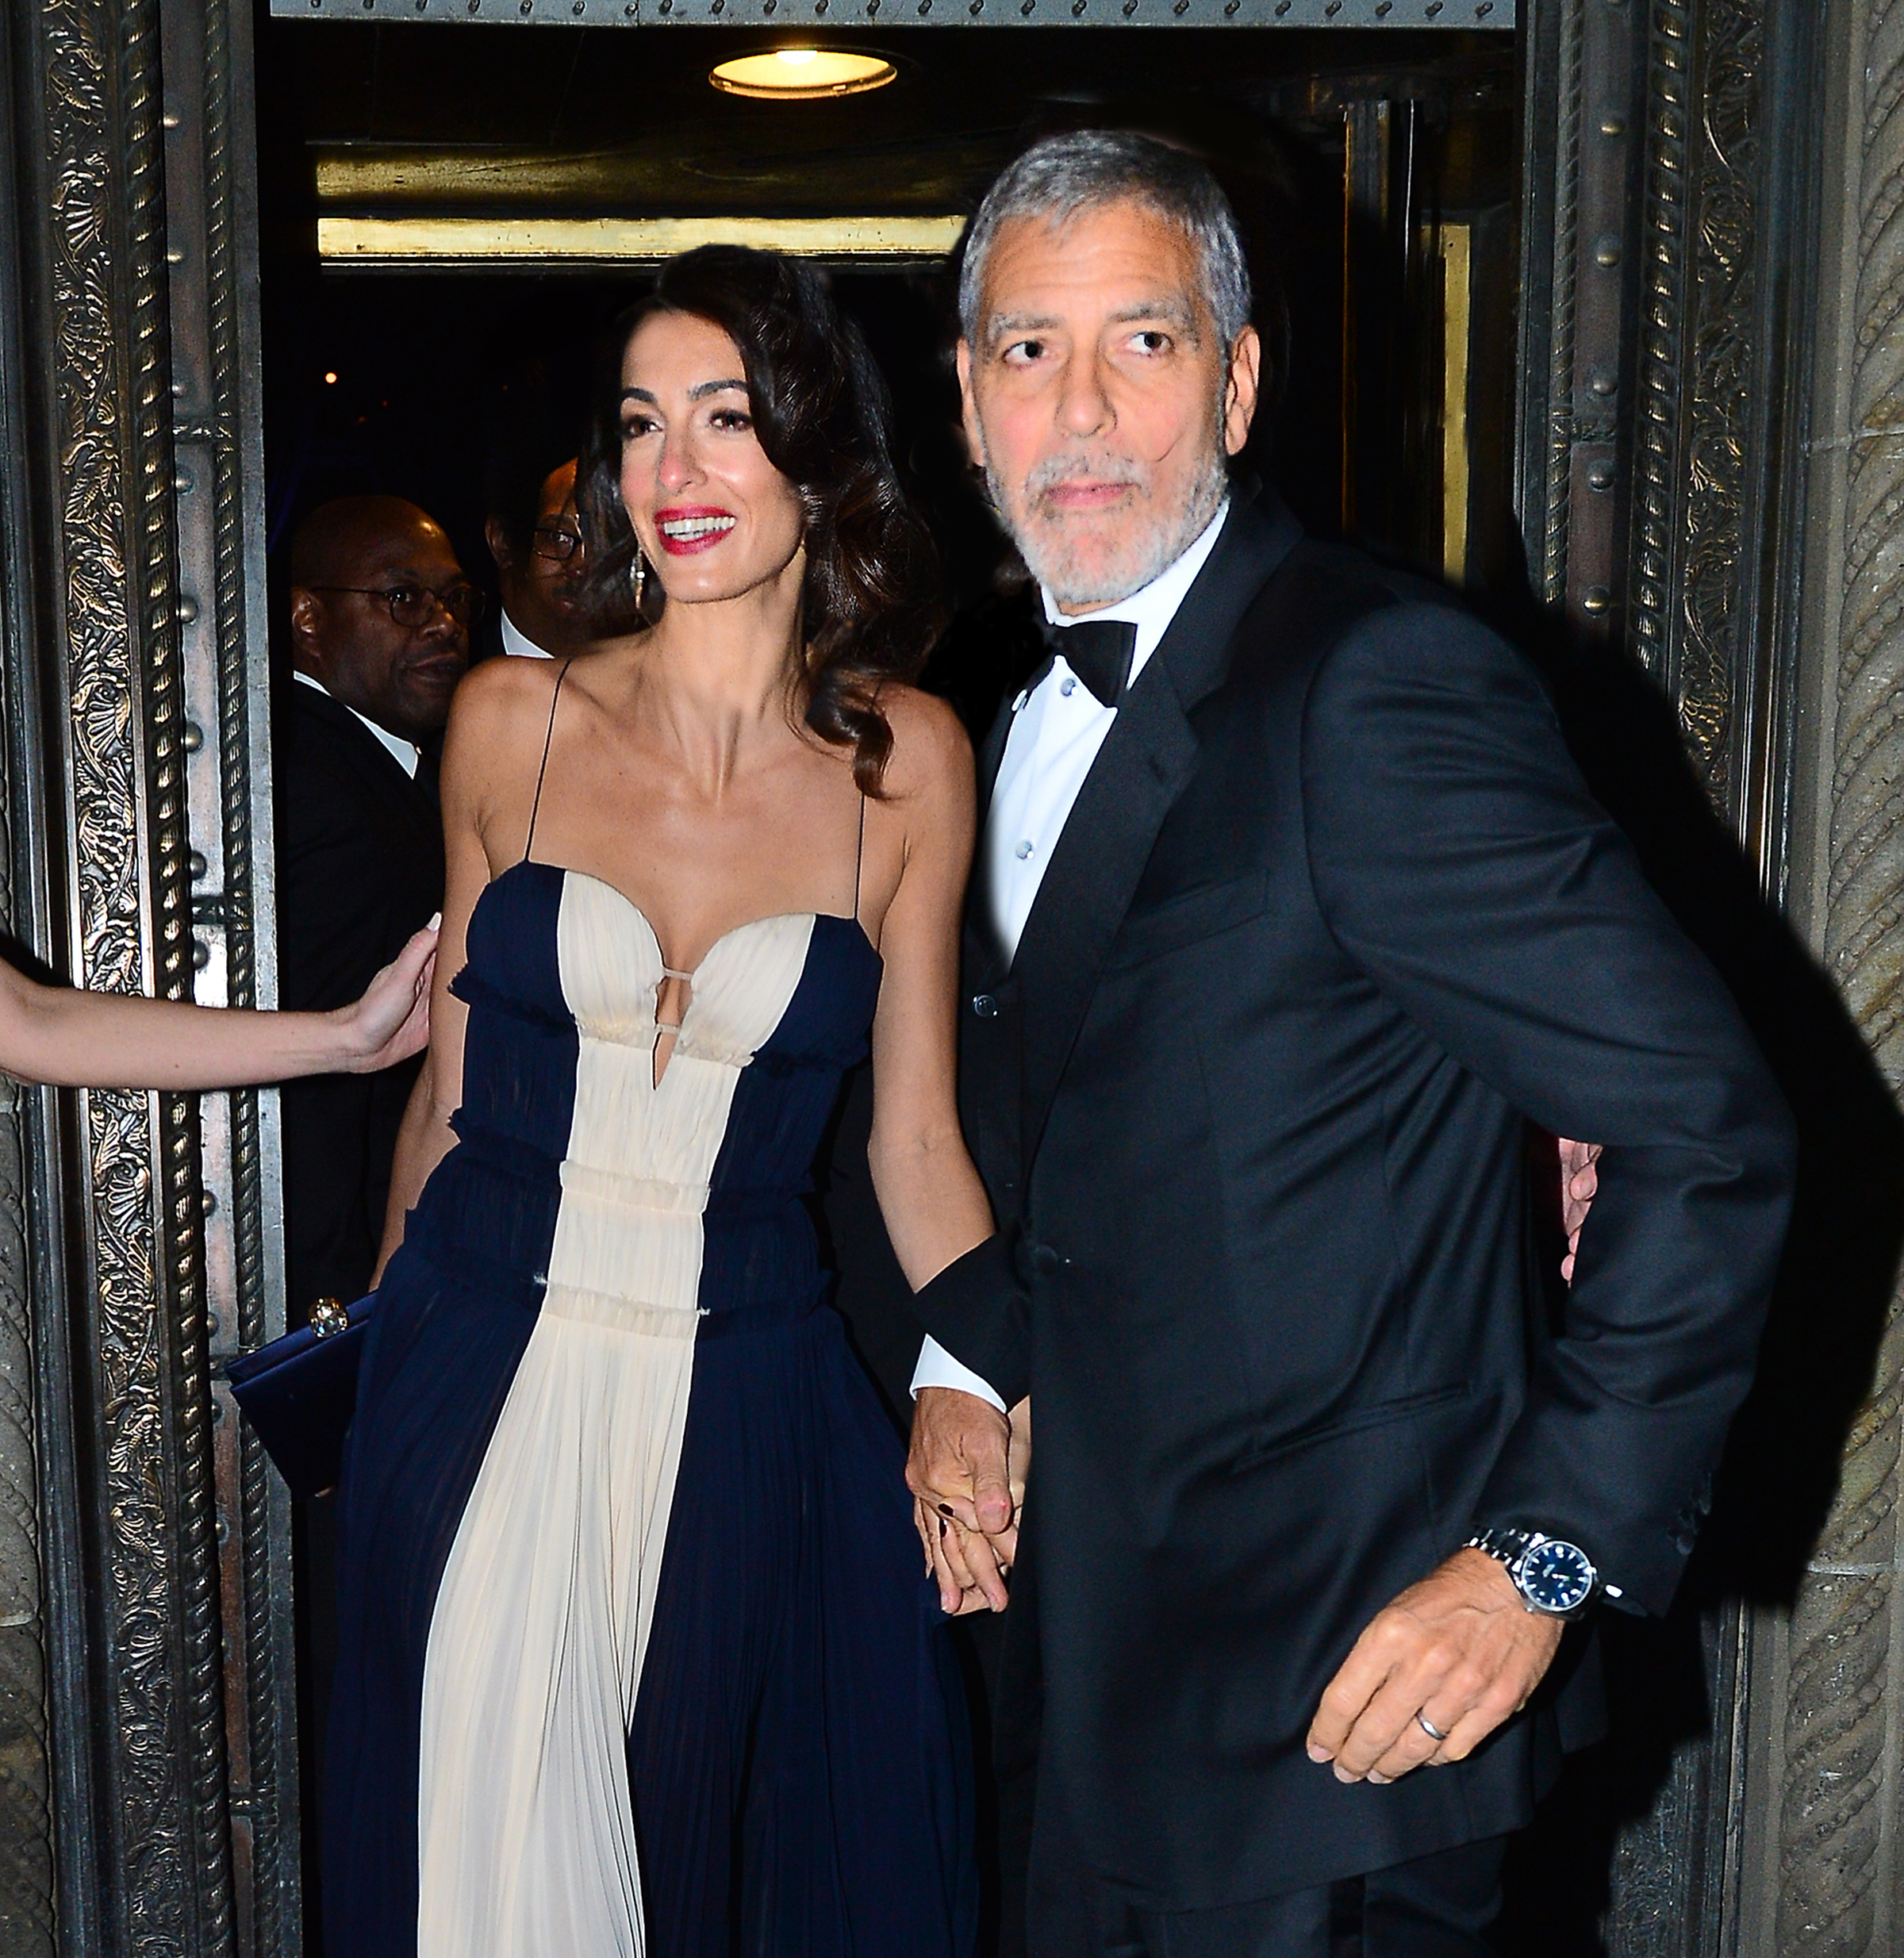 Amal Clooney and George Clooney are all smiles as they leave the United Nations Correspondence Association dinner at Cipriani 42nd in New York City on Dec. 5, 2018.